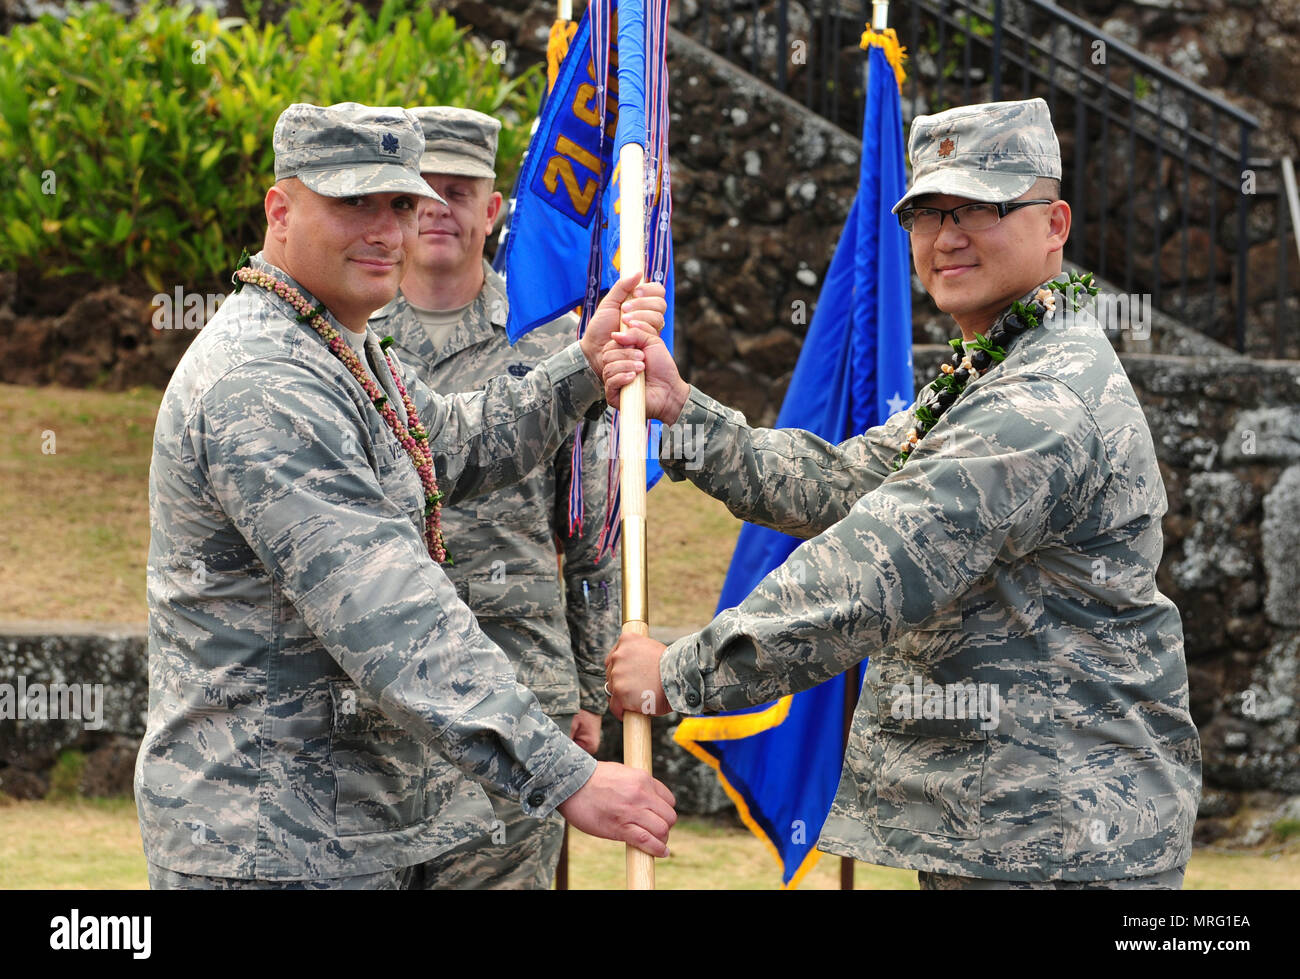 Lt. Col. Phillip Verroco, 21st Space Operations Squadron commander, gives the detachment flag to Maj. Edmond Chan, Detachment 3 incoming commander, during the Detachment 3 Change of Command Ceremony, Kaena Point, Hawaii, June 9, 2017.  Detachment 3 is a component of the 21st Space Operations Squadron, 50th Network Operations Group, 50th Space Wing, and is located on the western tip of Oahu.  It is the oldest and one of seven worldwide remote tracking stations in the Air Force Satellite Control Network.  (U.S. Air Force photo by Tech. Sgt. Heather Redman) - Stock Image